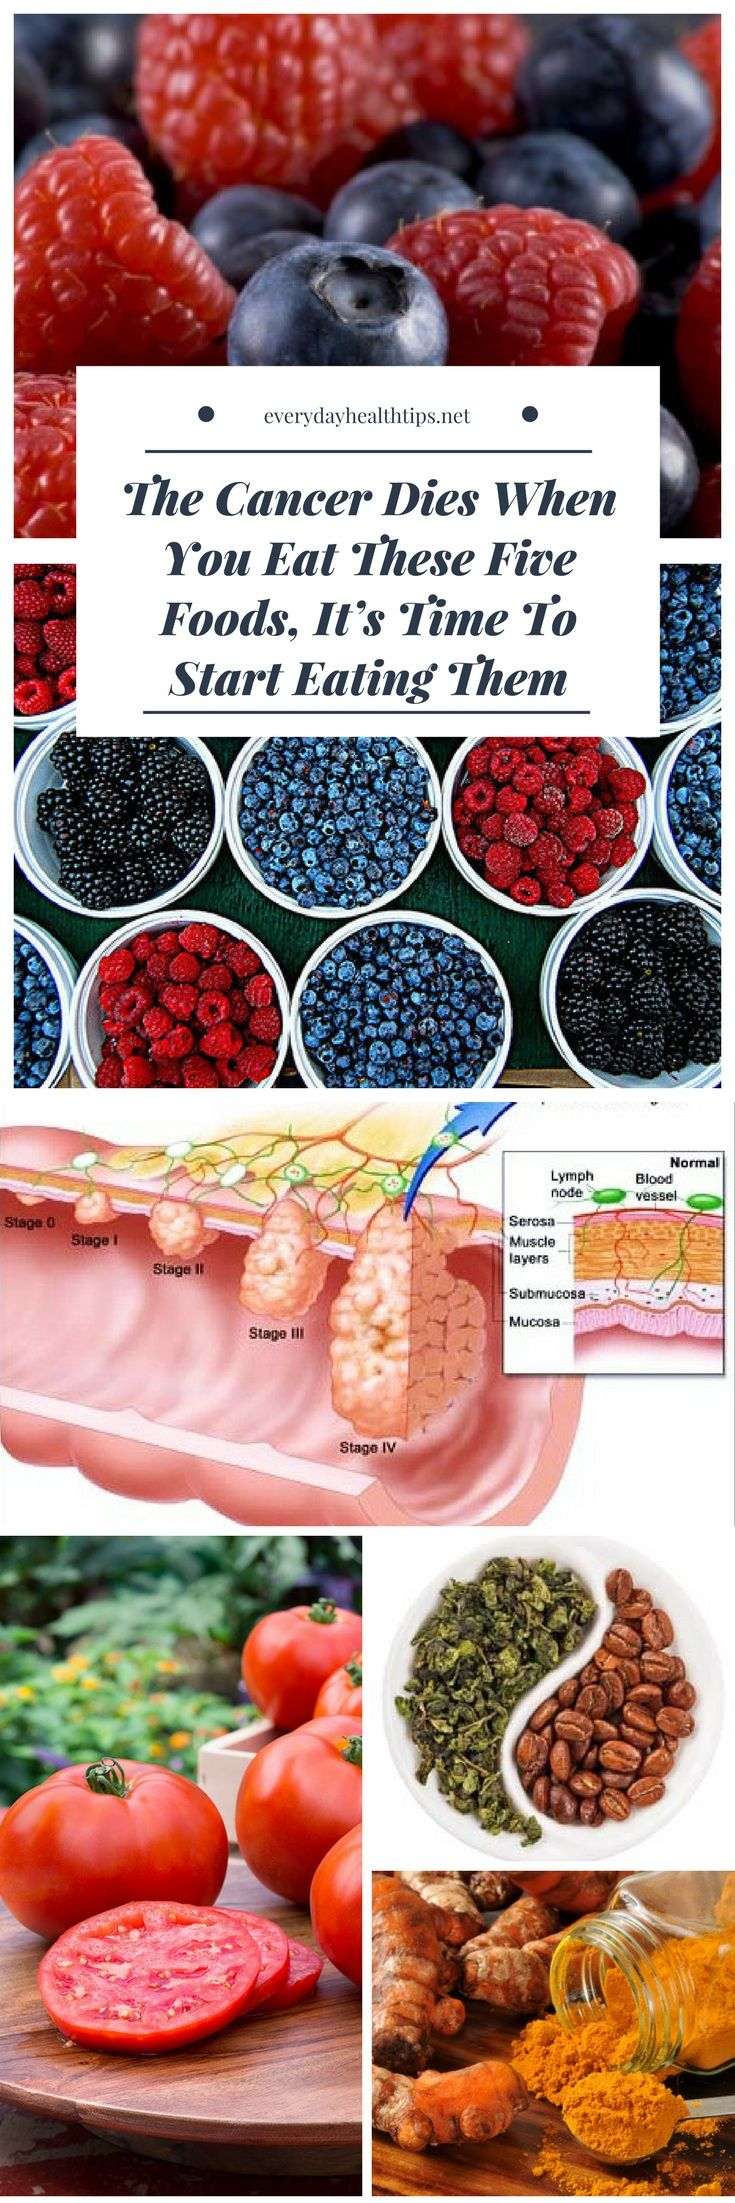 The Cancer Dies When You Eat These Five Foods, It's Time To Start Eating Them #cancer #five #food #health #natural #remedies